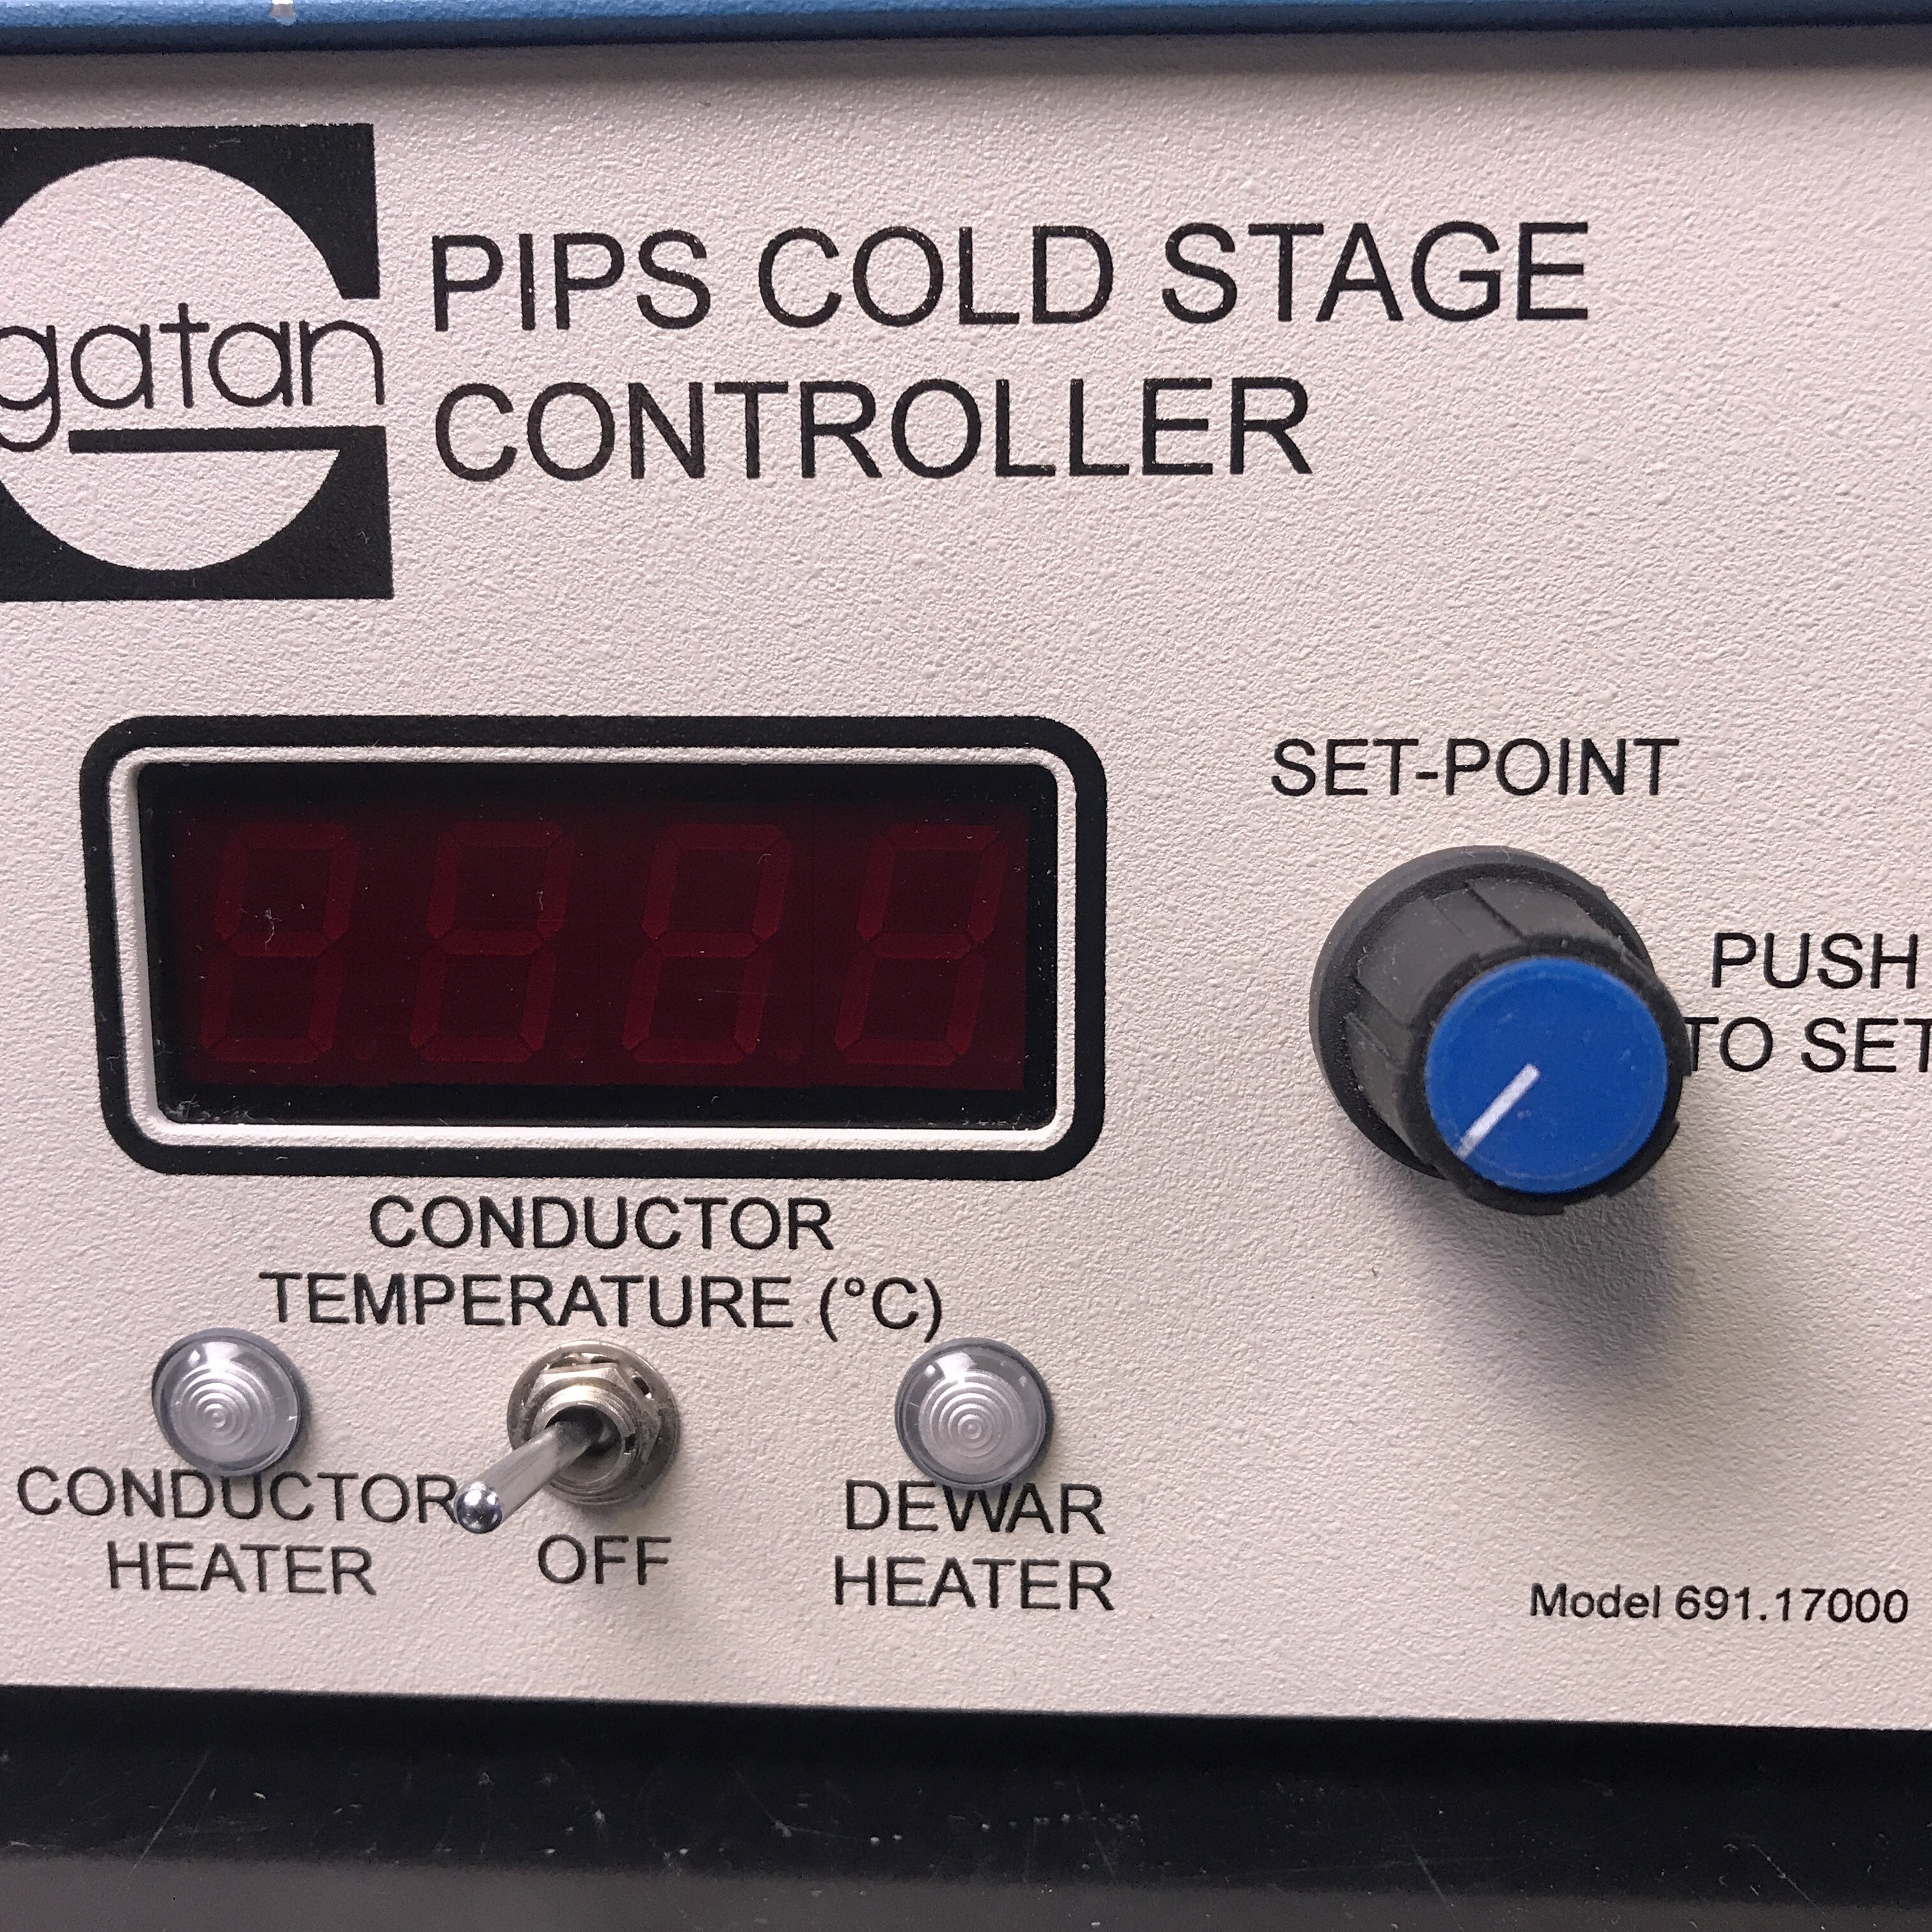 Gatan PIPS Cold Stage Controller Image